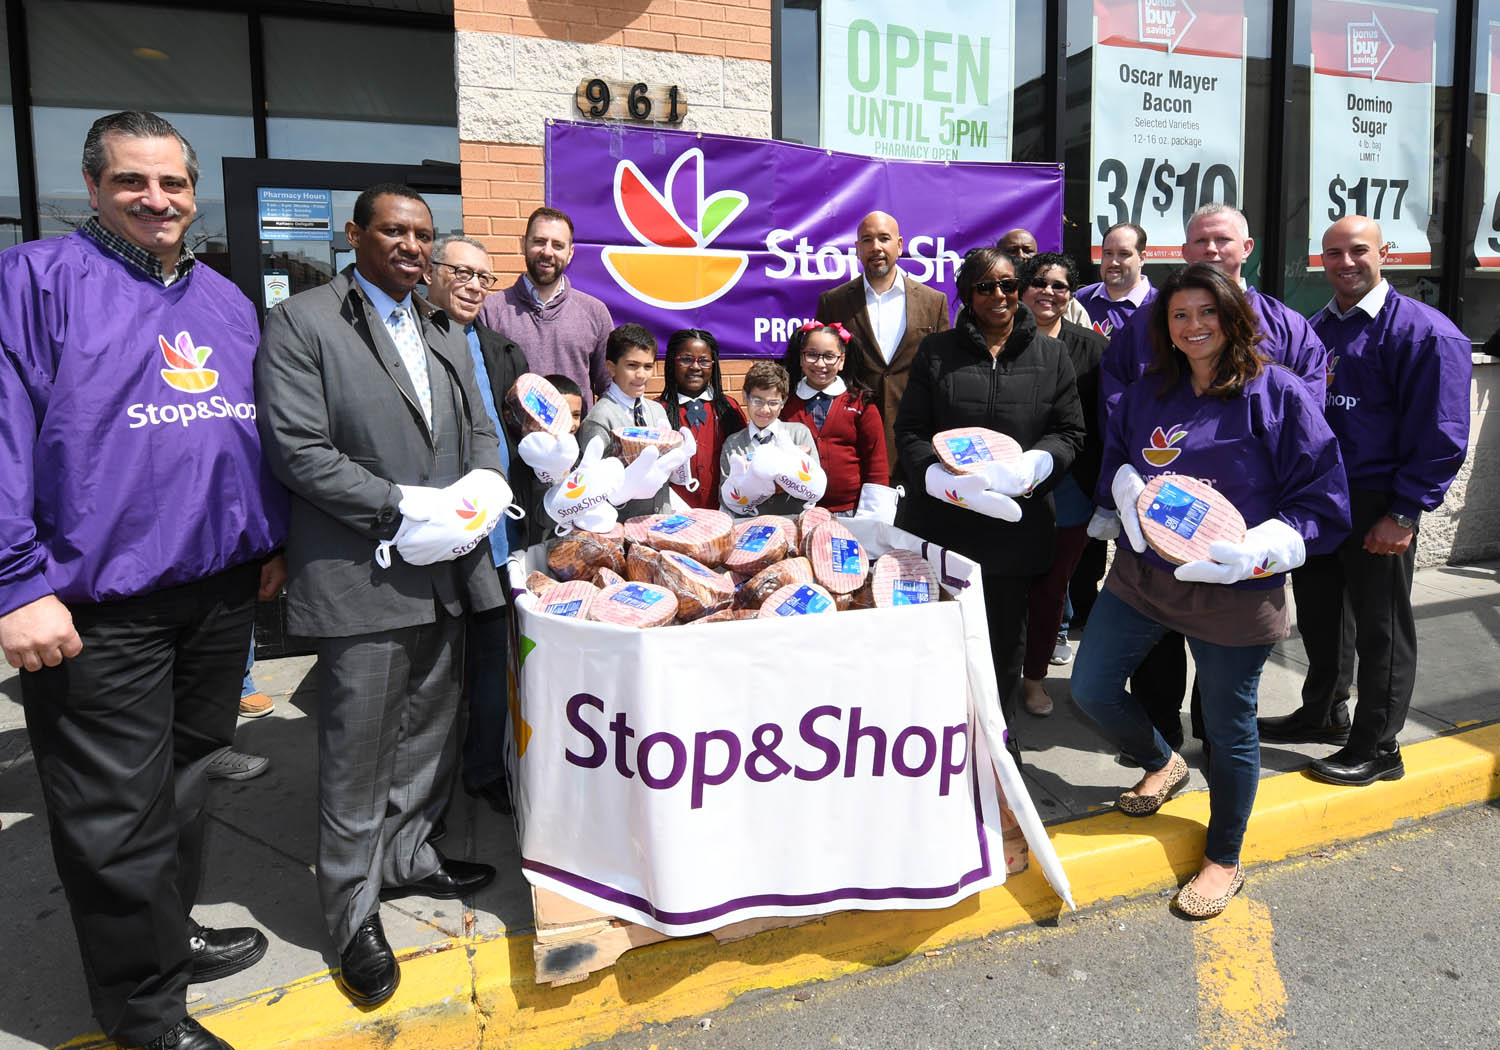 BX Hams-Group Stop & Shop executives at the E. 174th supermarket in the Bronx joined by (l.-r.) Rev. Malobe Sampson of Thessalonia Church; Bishop Angelo Rosario of the Bronx Clergy Task Force; Christopher Bean of POTS (Part of the Solution); students from the neighboring St. Thomas Aquinas School; Bronx Borough President Ruben Diaz Jr.; Mary Brown of Thessalonia Church; and Rev. Lourdes Pena of New Season Christian Center, at a bin full of Easter hams the group helped unload as part of the supermarket's donation of 1,000 hams to five community organizations on April 13. (Credit: Stop & Shop)